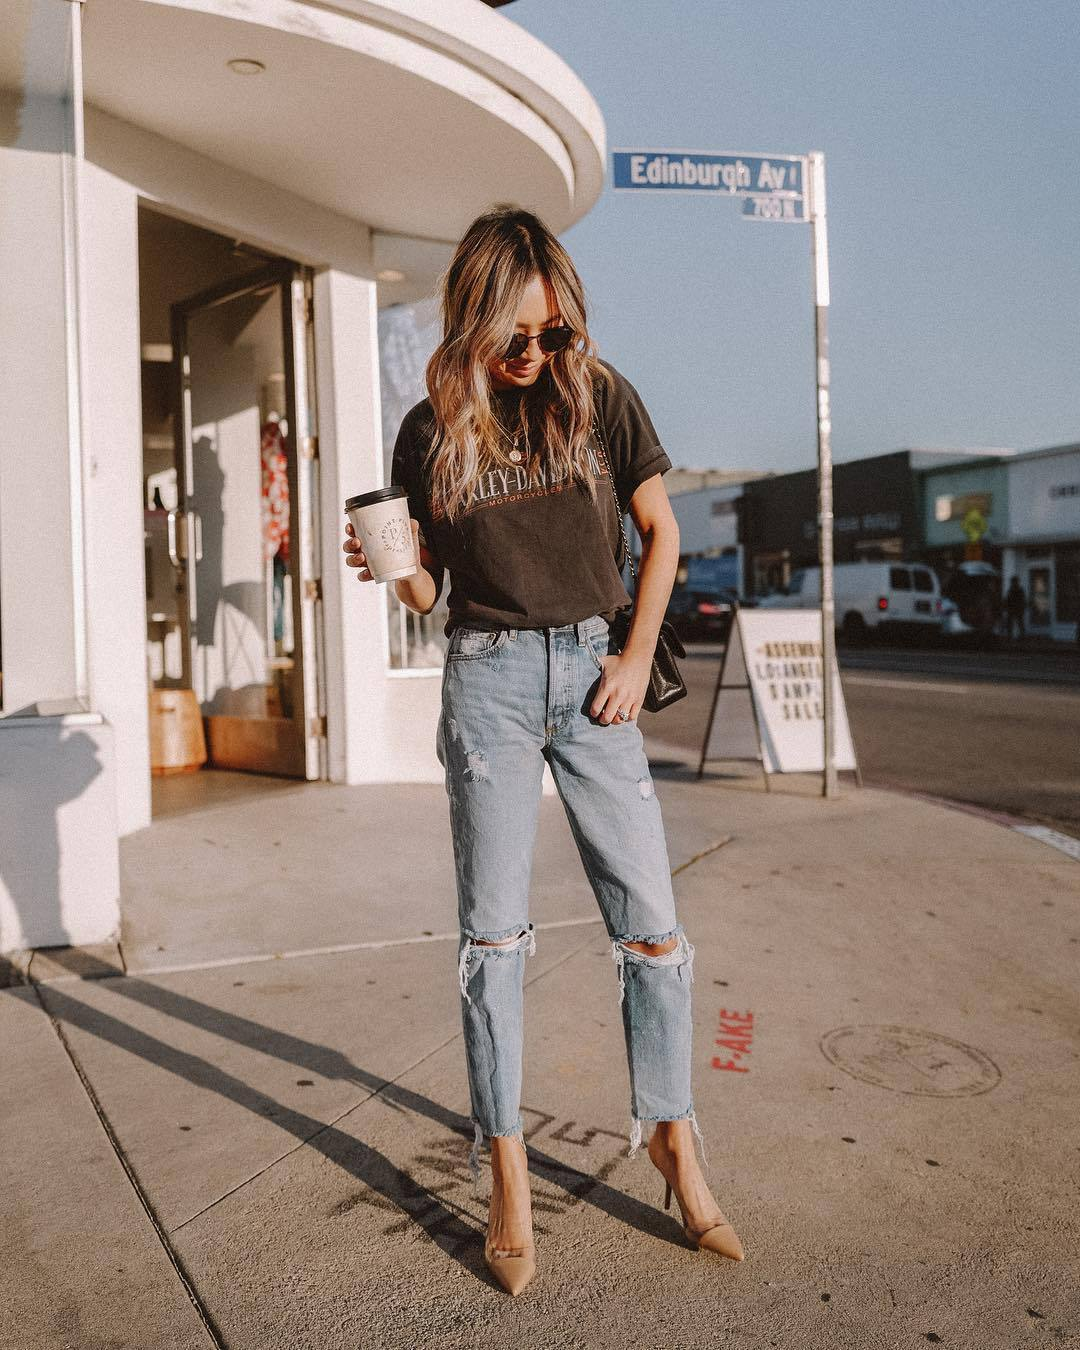 jeans cropped jeans ripped jeans straight jeans pumps black t-shirt black bag